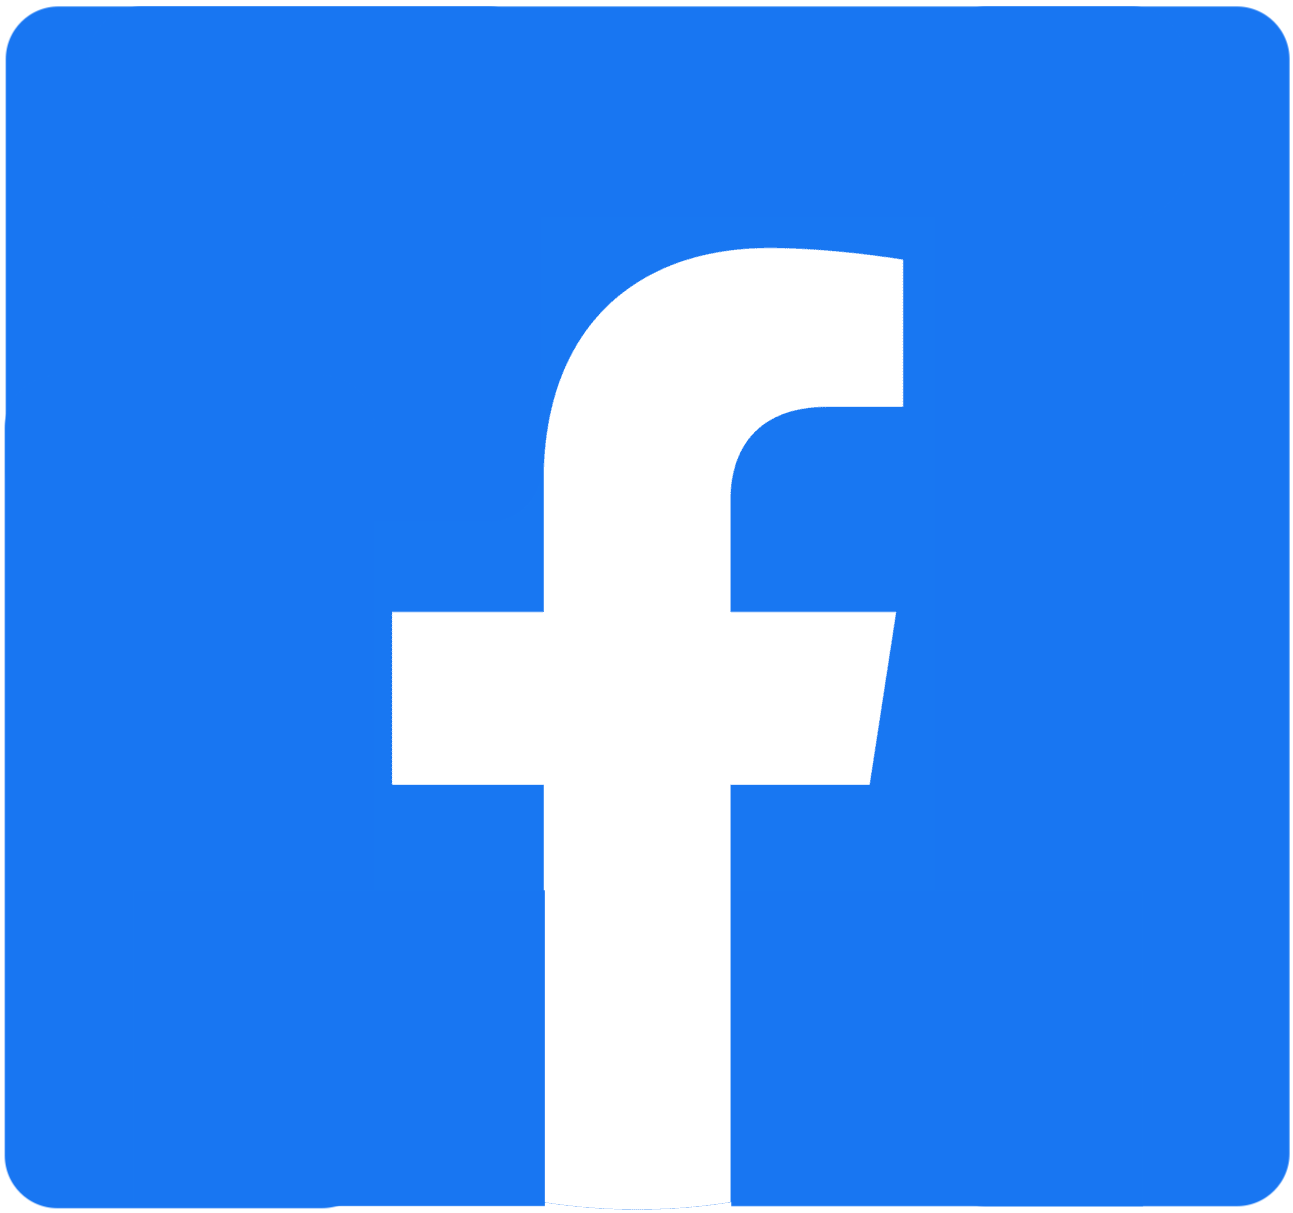 Button that redirects to Upstreet's Facebook page